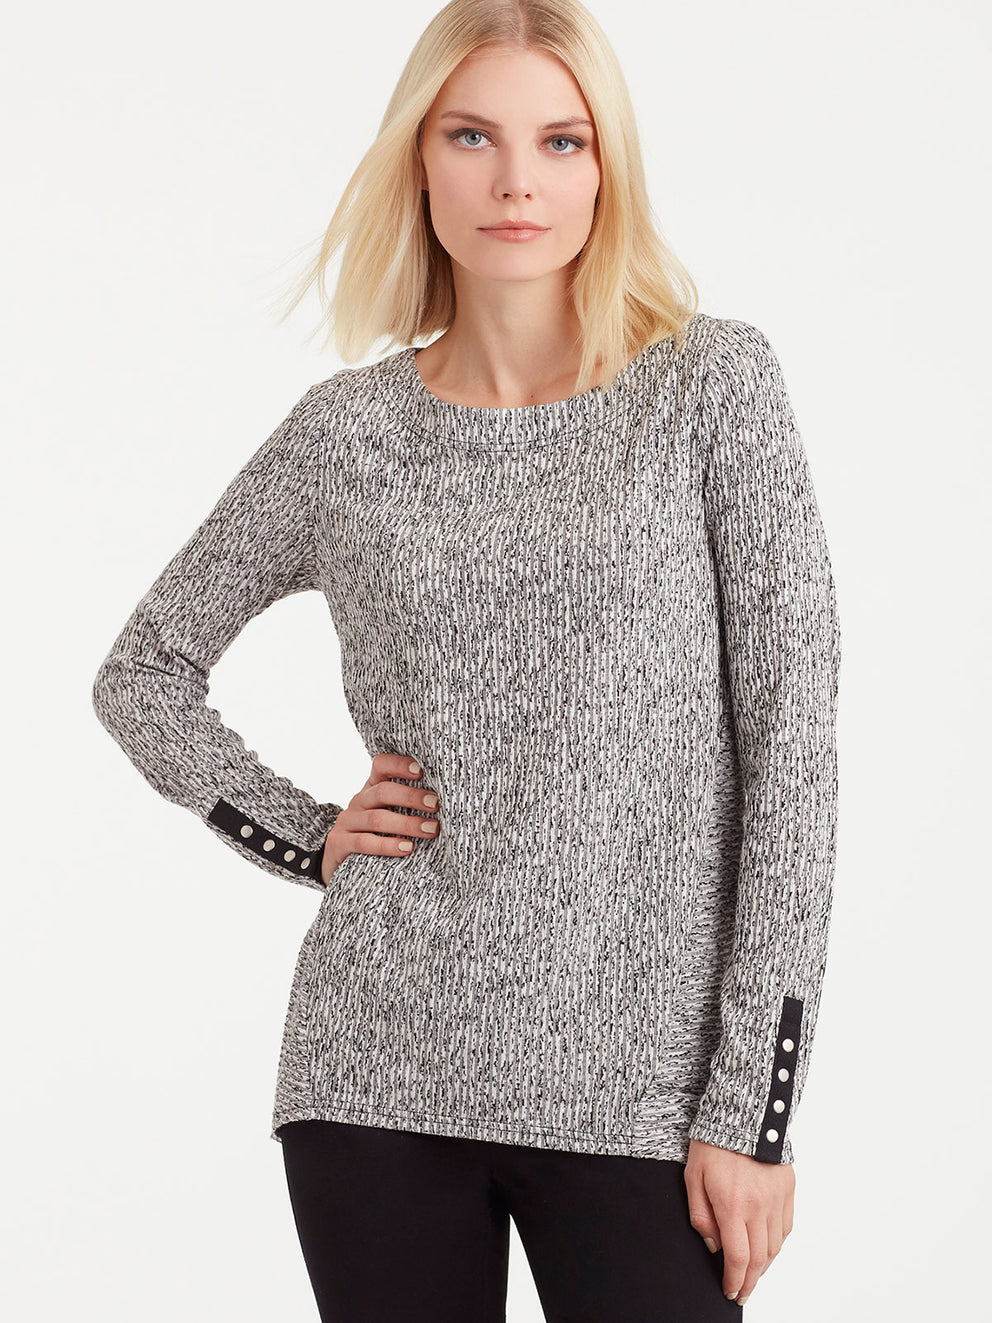 The Jones New York Snap Sleeve Boat Neck Top in color Pebble Glimmer - Image Position 1